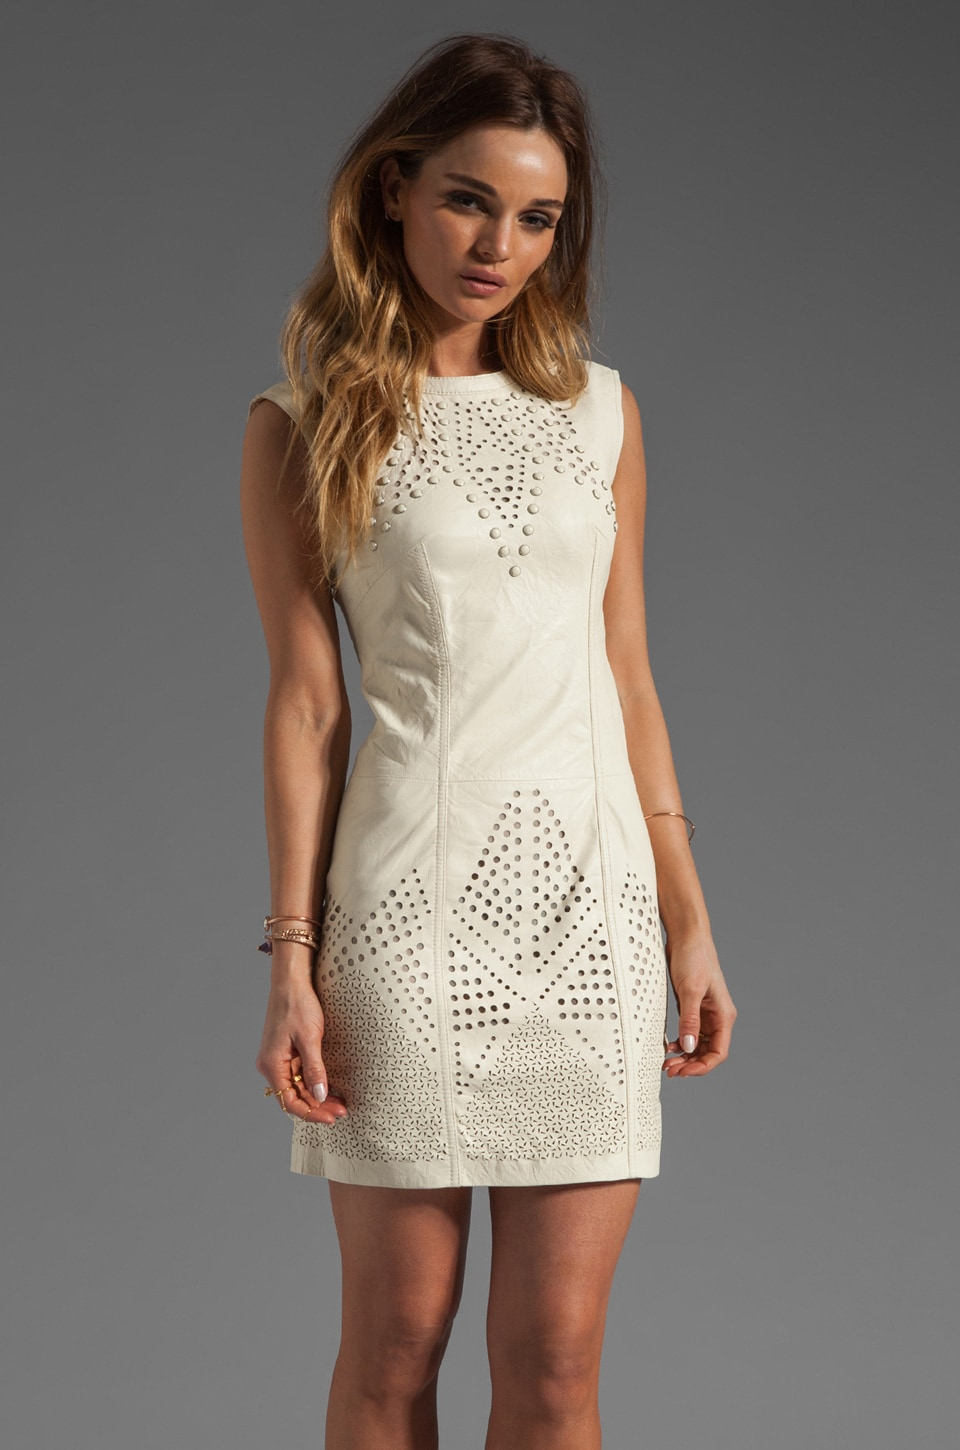 Catherine Malandrino Perforated Leather Dress in Ivory